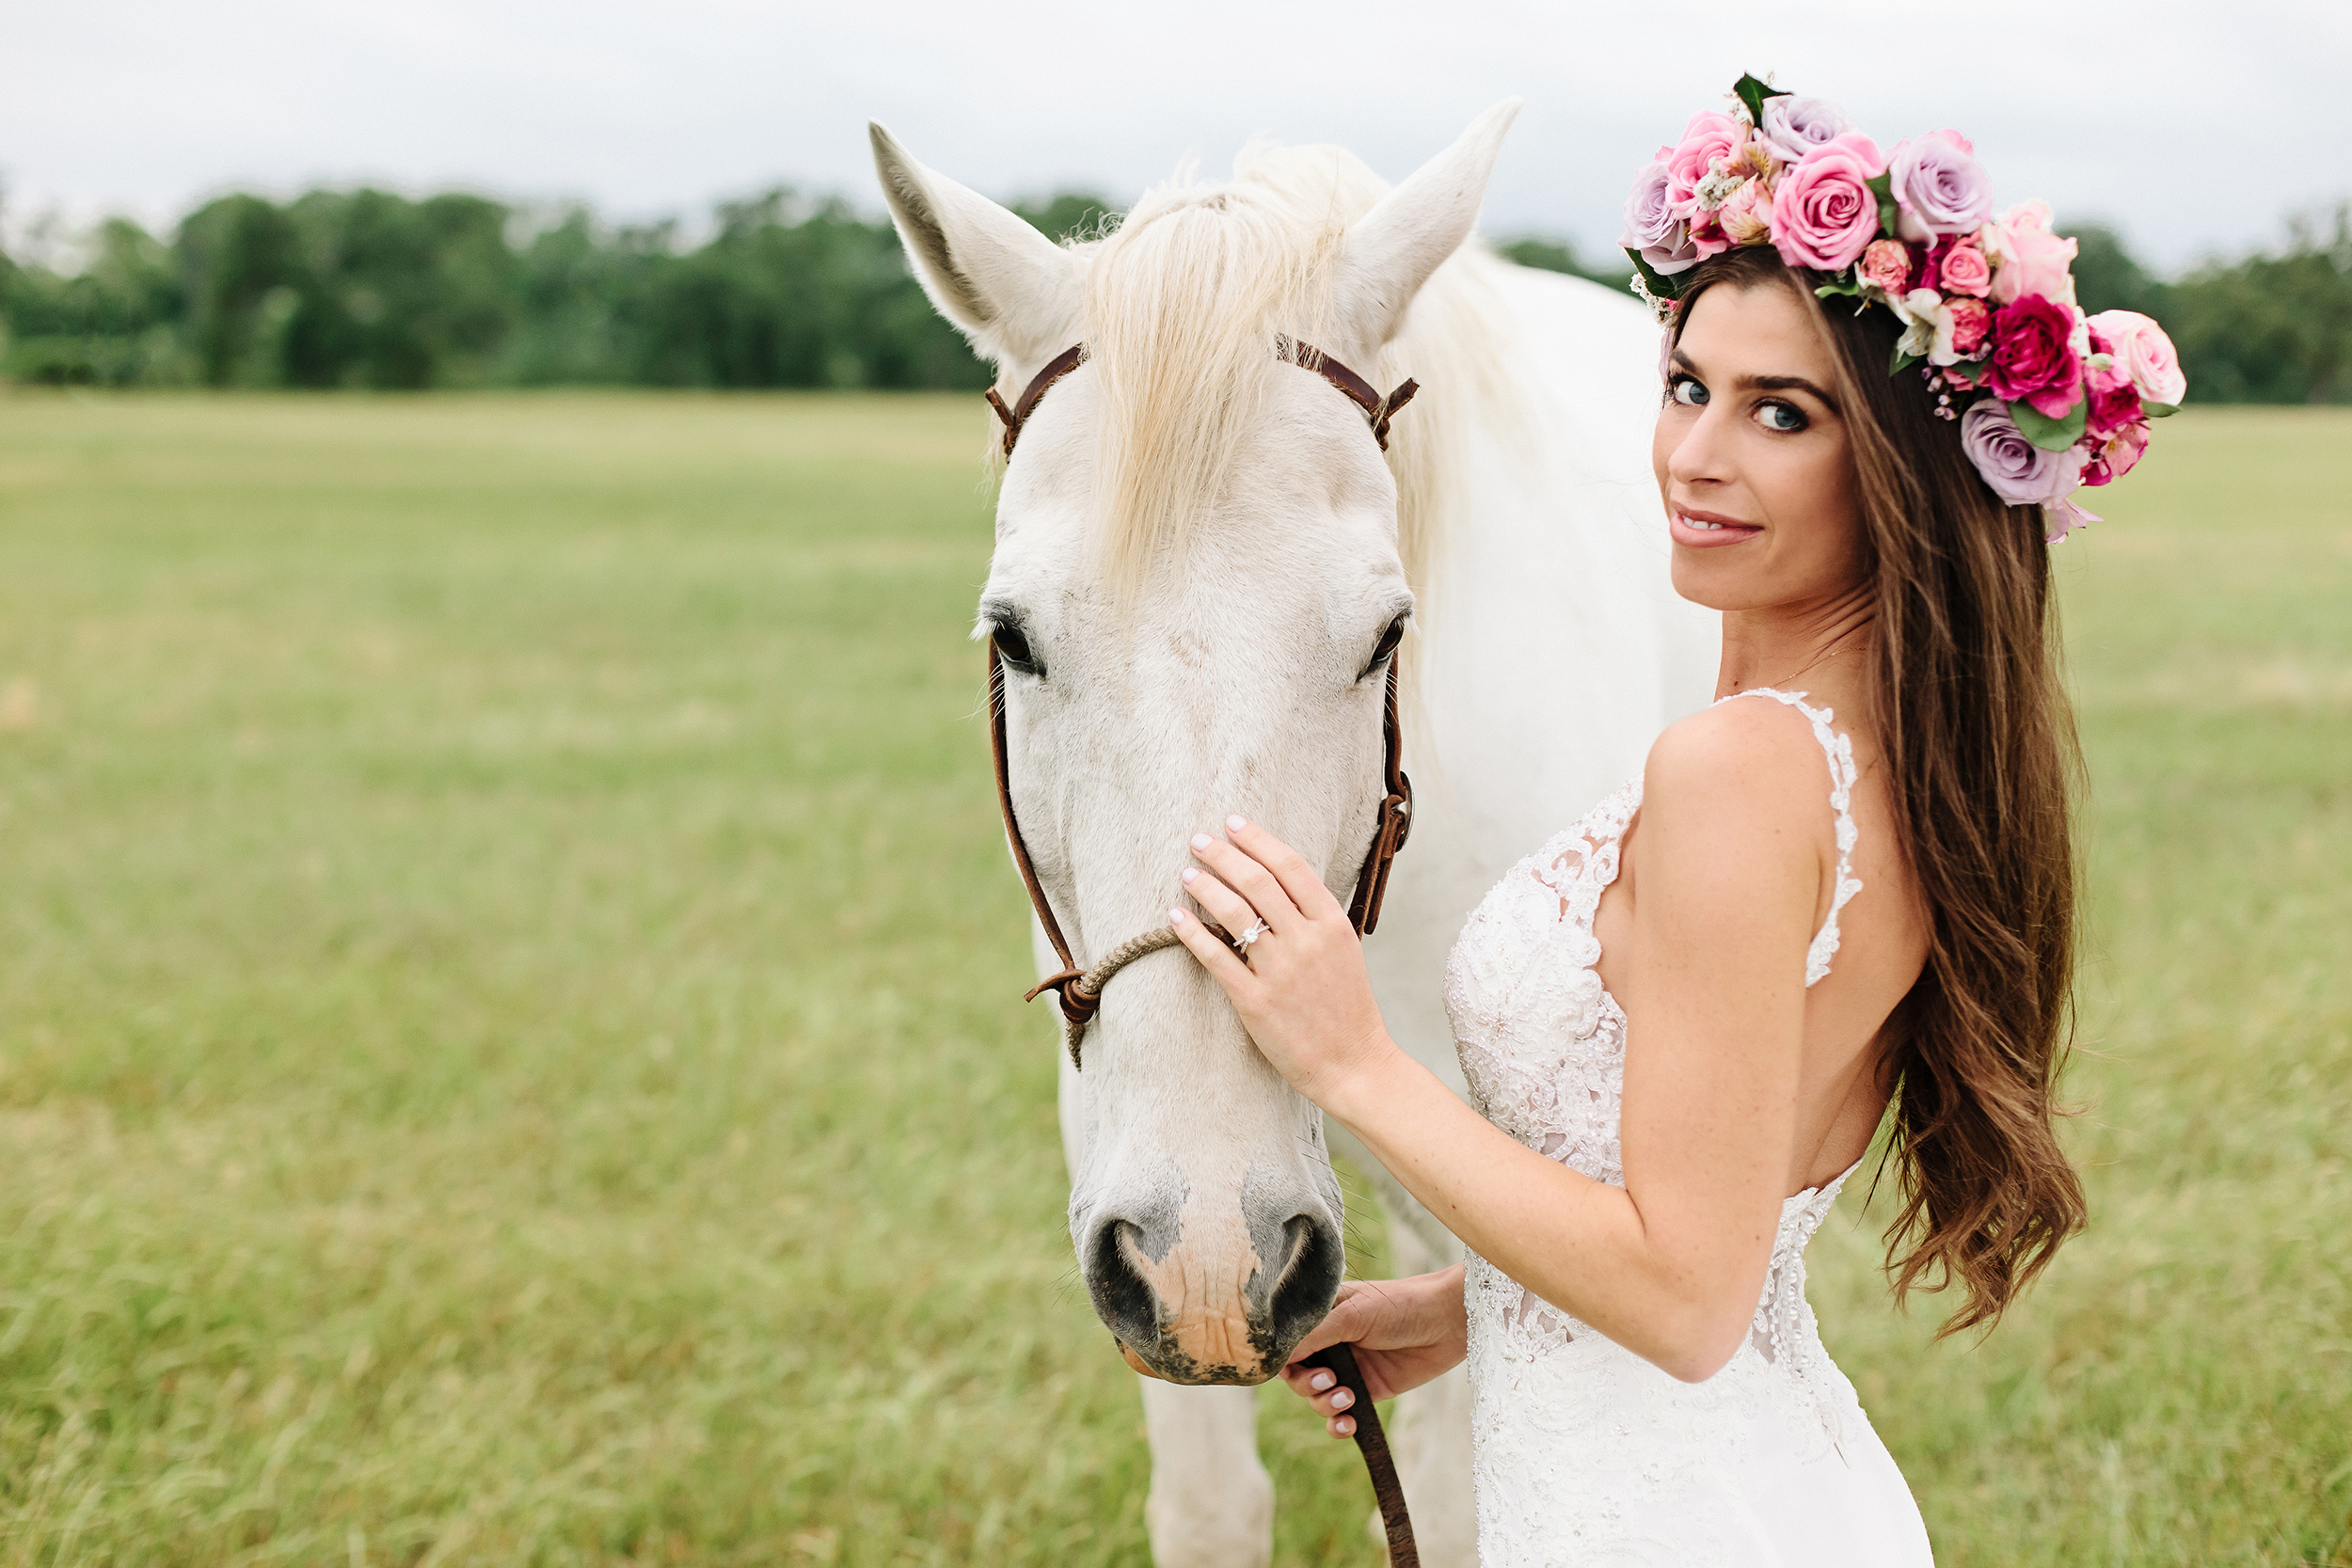 Bride with White Horse and Flower Crown | Cassie Schott Photography